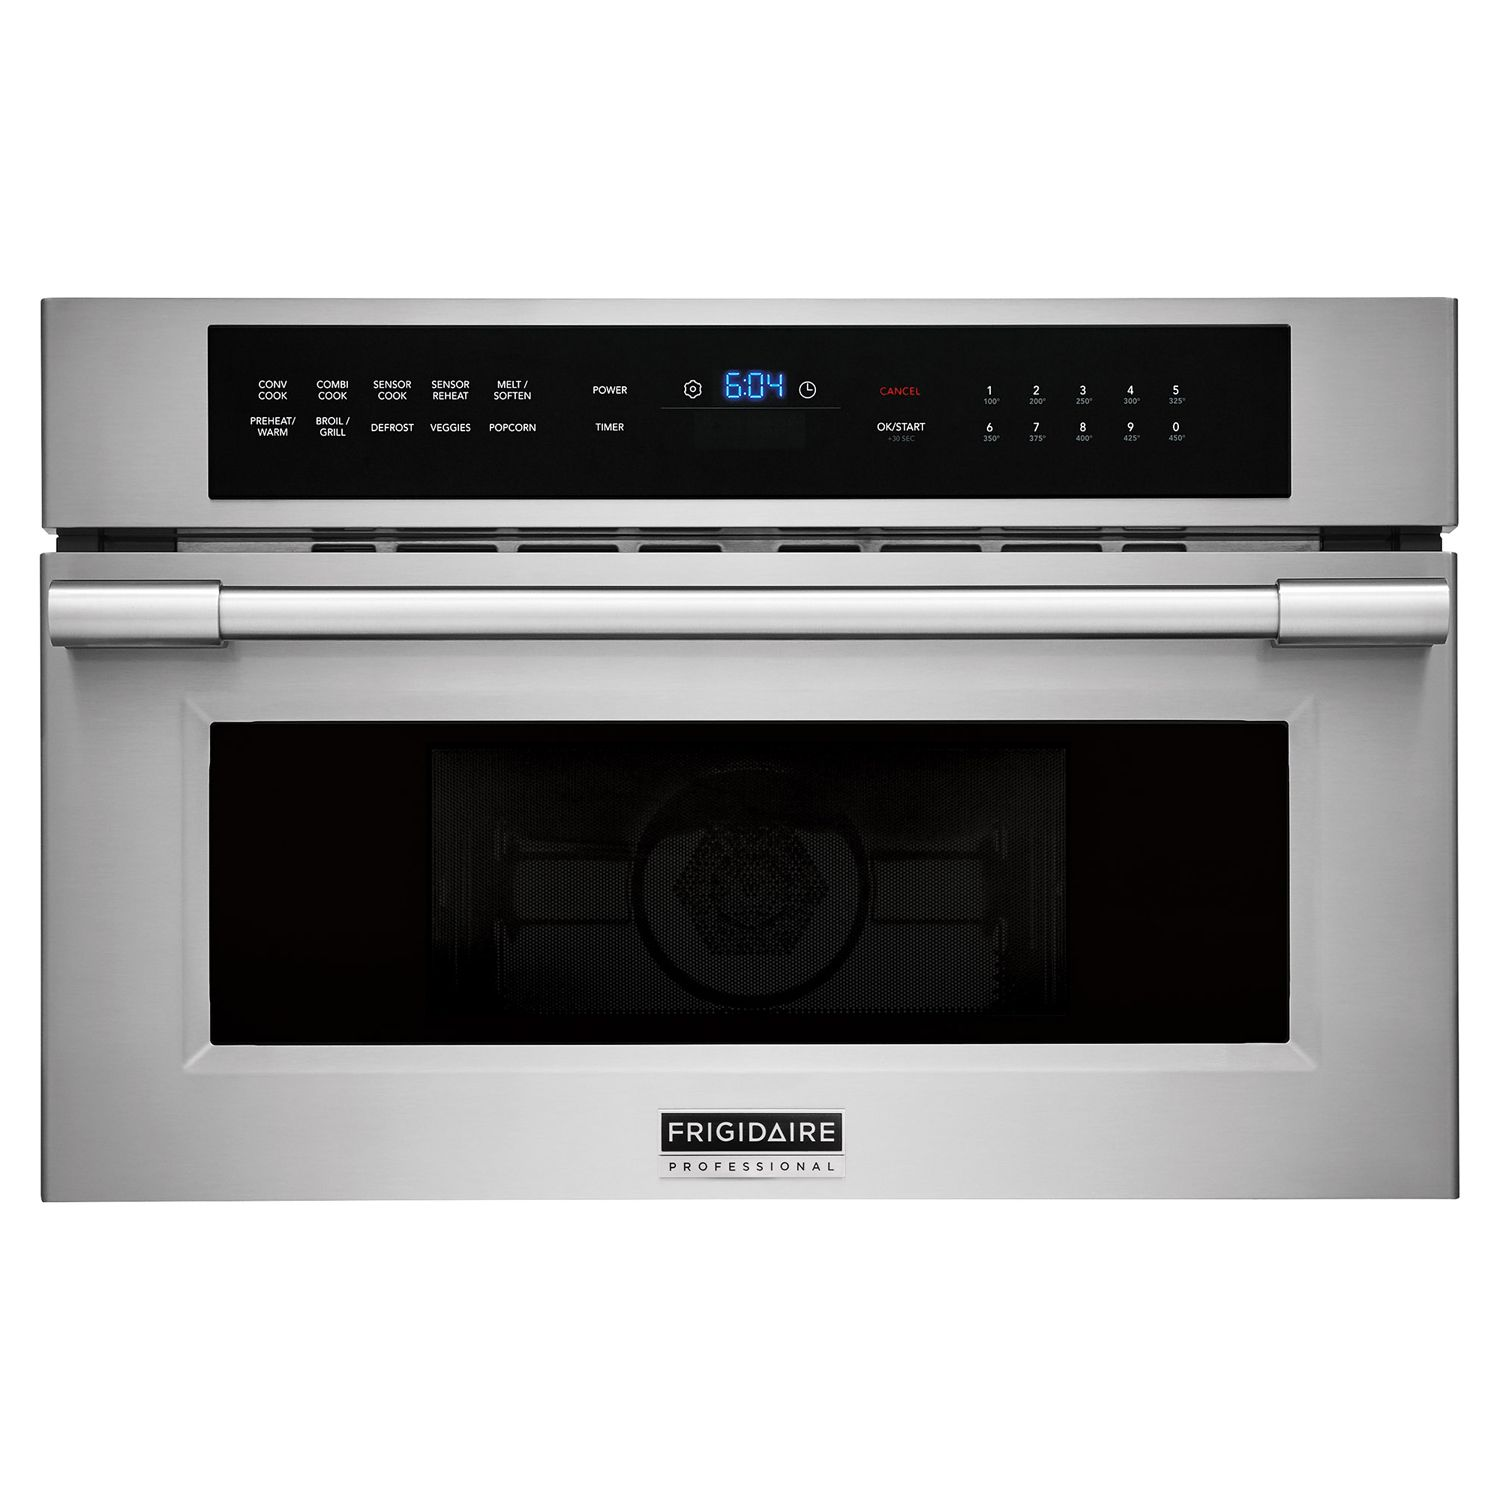 Frigidaire Professional 30 Built In Stainless Steel Convection Dropdown Door Microwave Oven